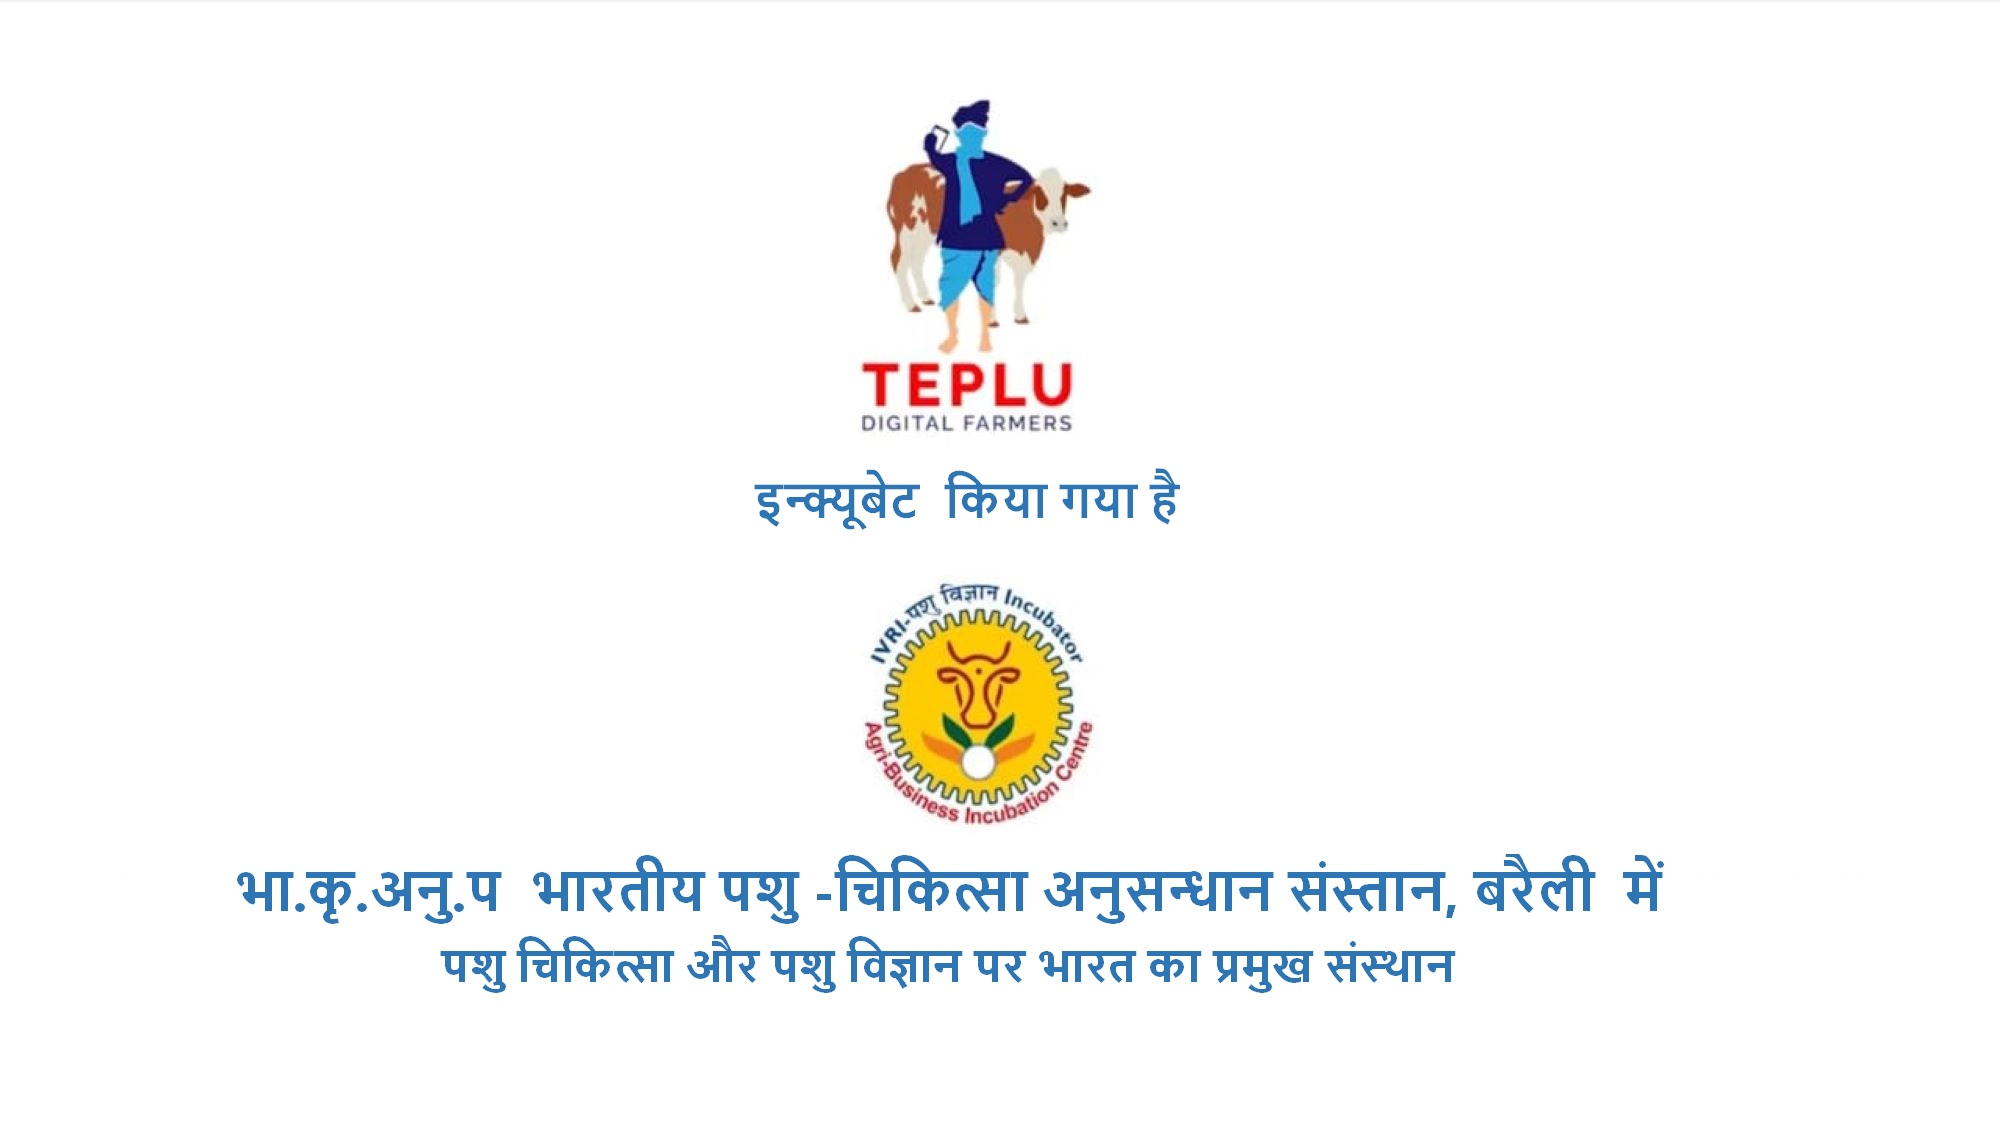 Teplu is incubated at IVRI for offering dairy farming courses